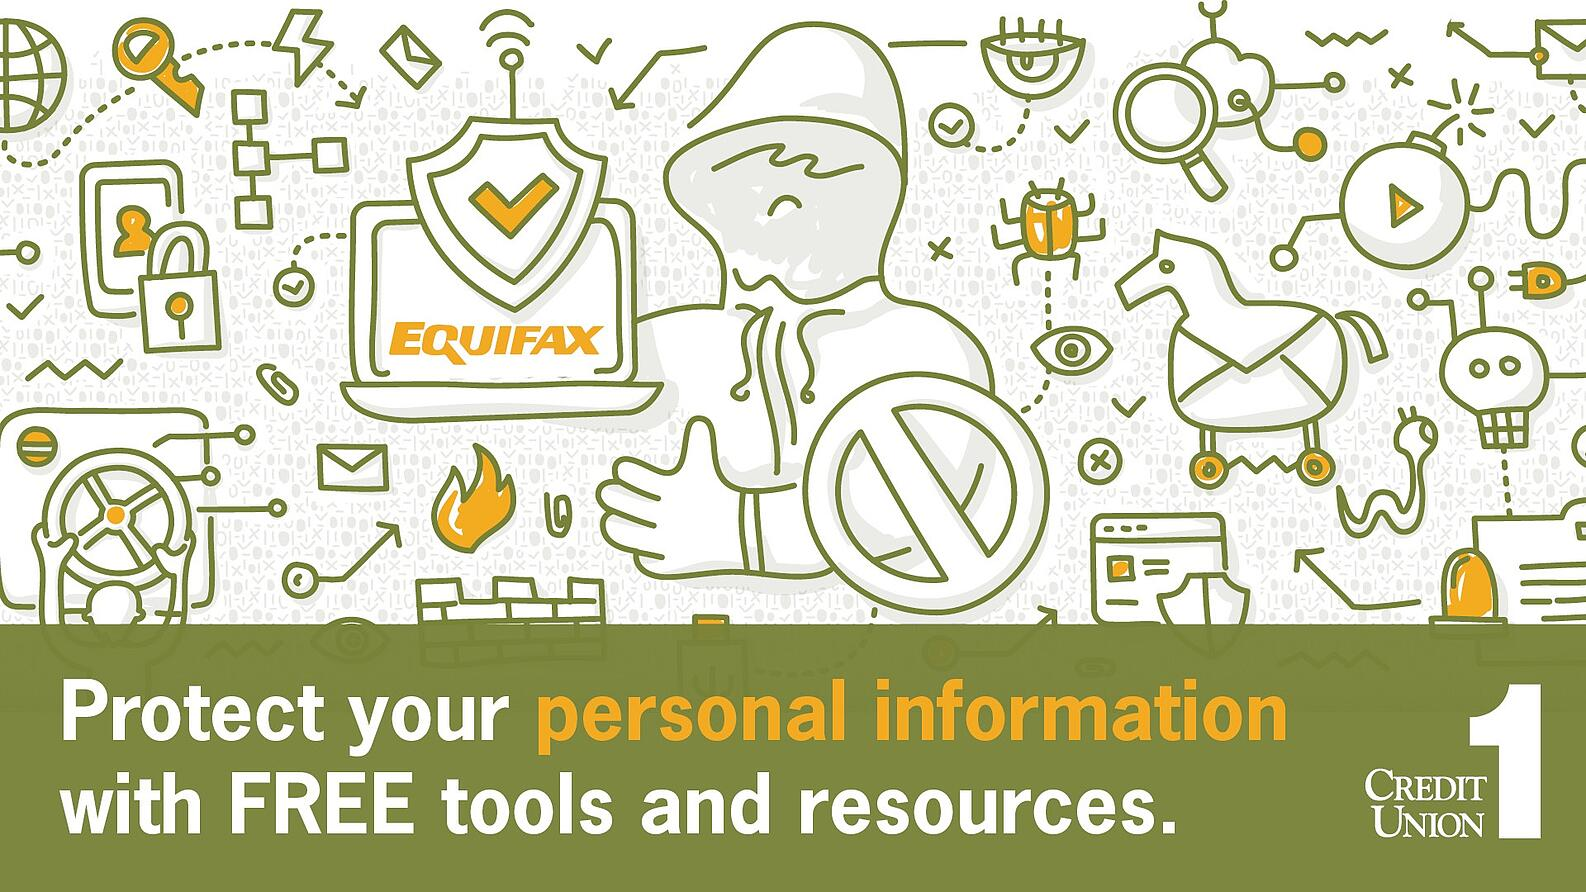 2017 Equifax Breech and How Credit Union 1 Protects Your Personal Information